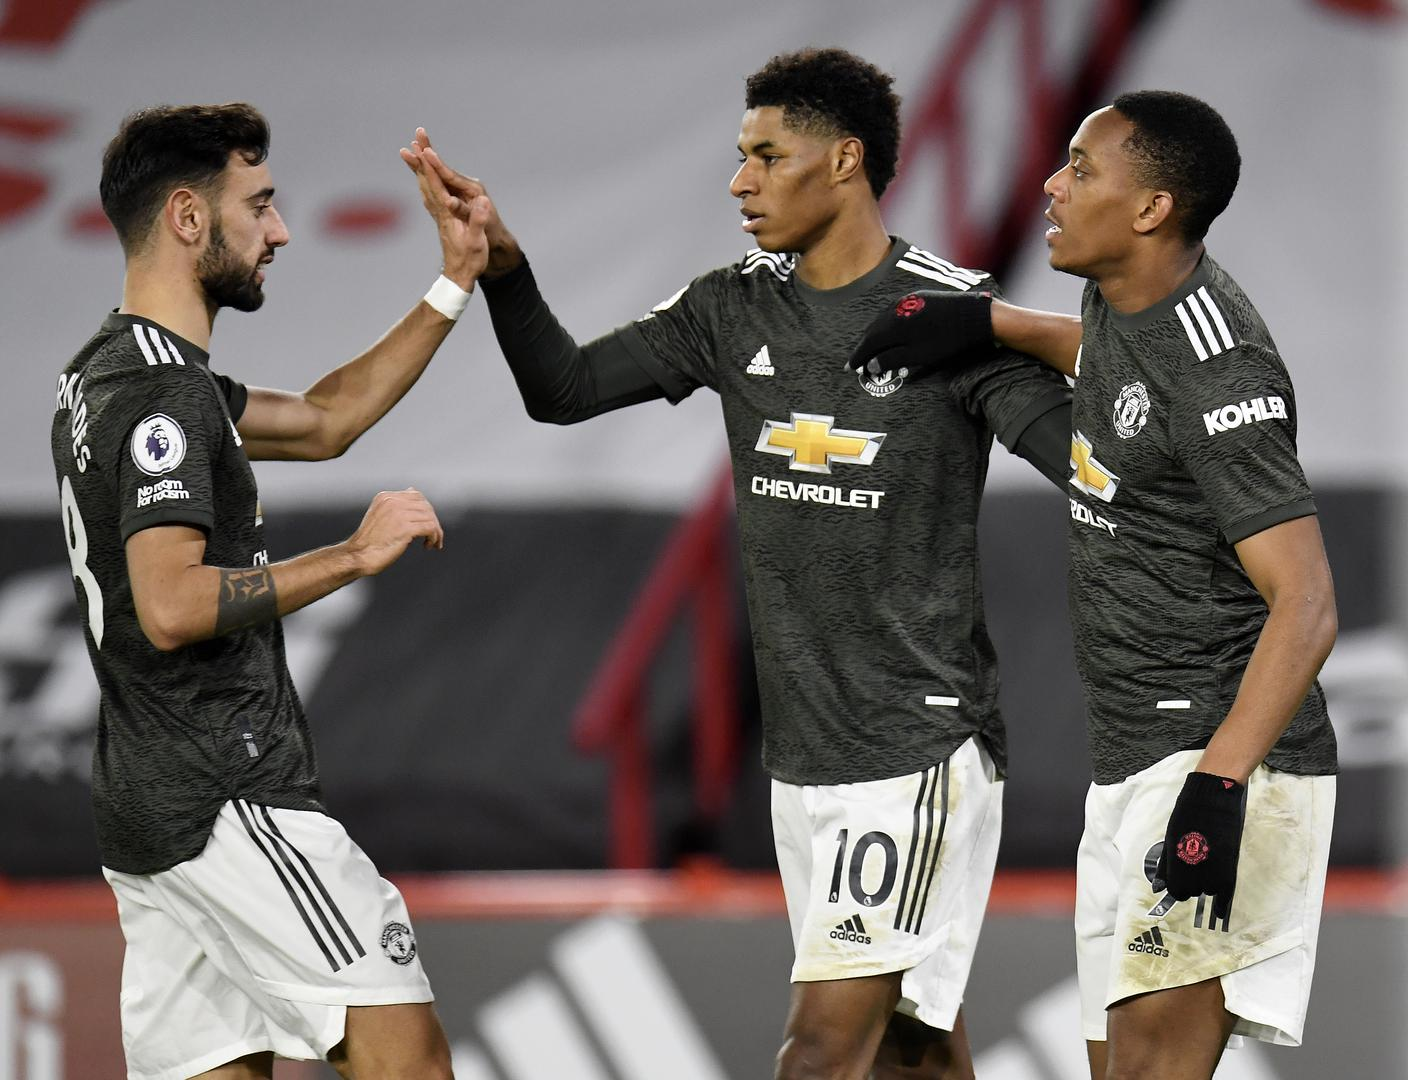 Bruno Fernandes, Marcus Rashford and Anthony Martial celebrate.